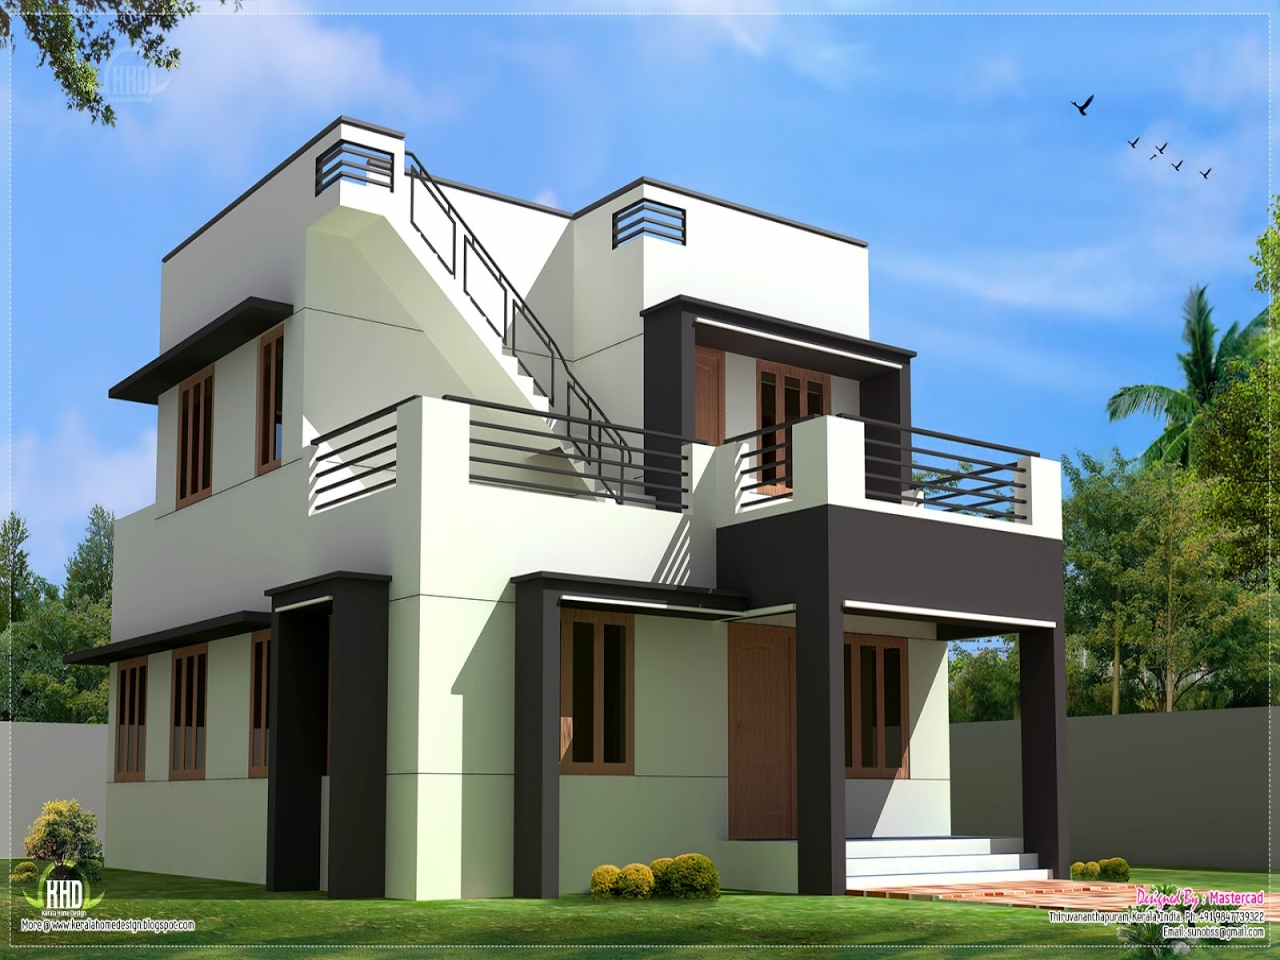 Collection: 50 Beautiful Narrow House Design For A 2 Story/2 Floor Home  With Small Lot   Bahay OFW